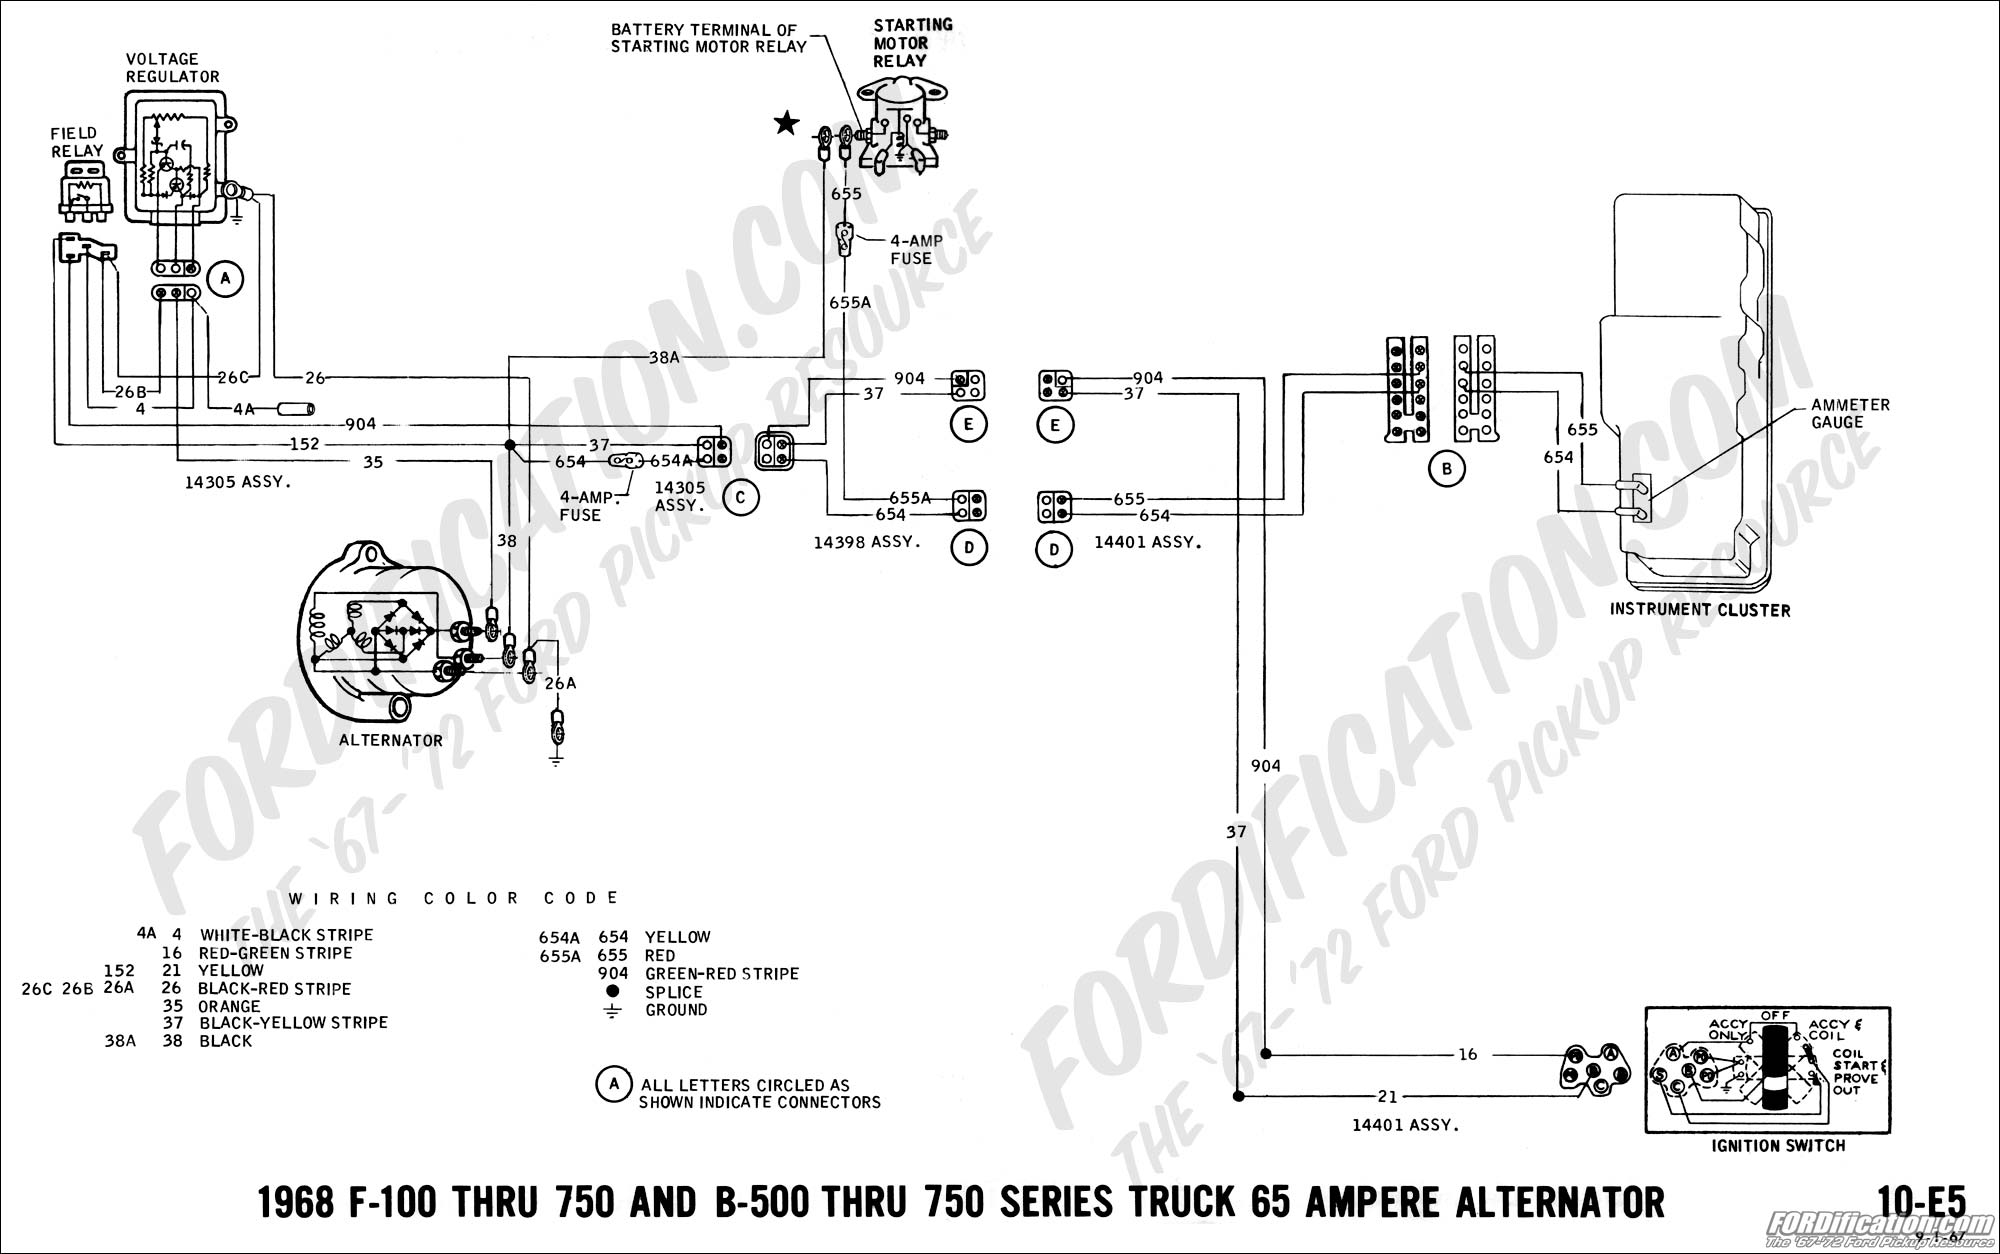 68 07 1968 ford f100 wiring diagram 1965 ford f100 alternator wiring 1965 ford mustang wiring diagrams at gsmportal.co